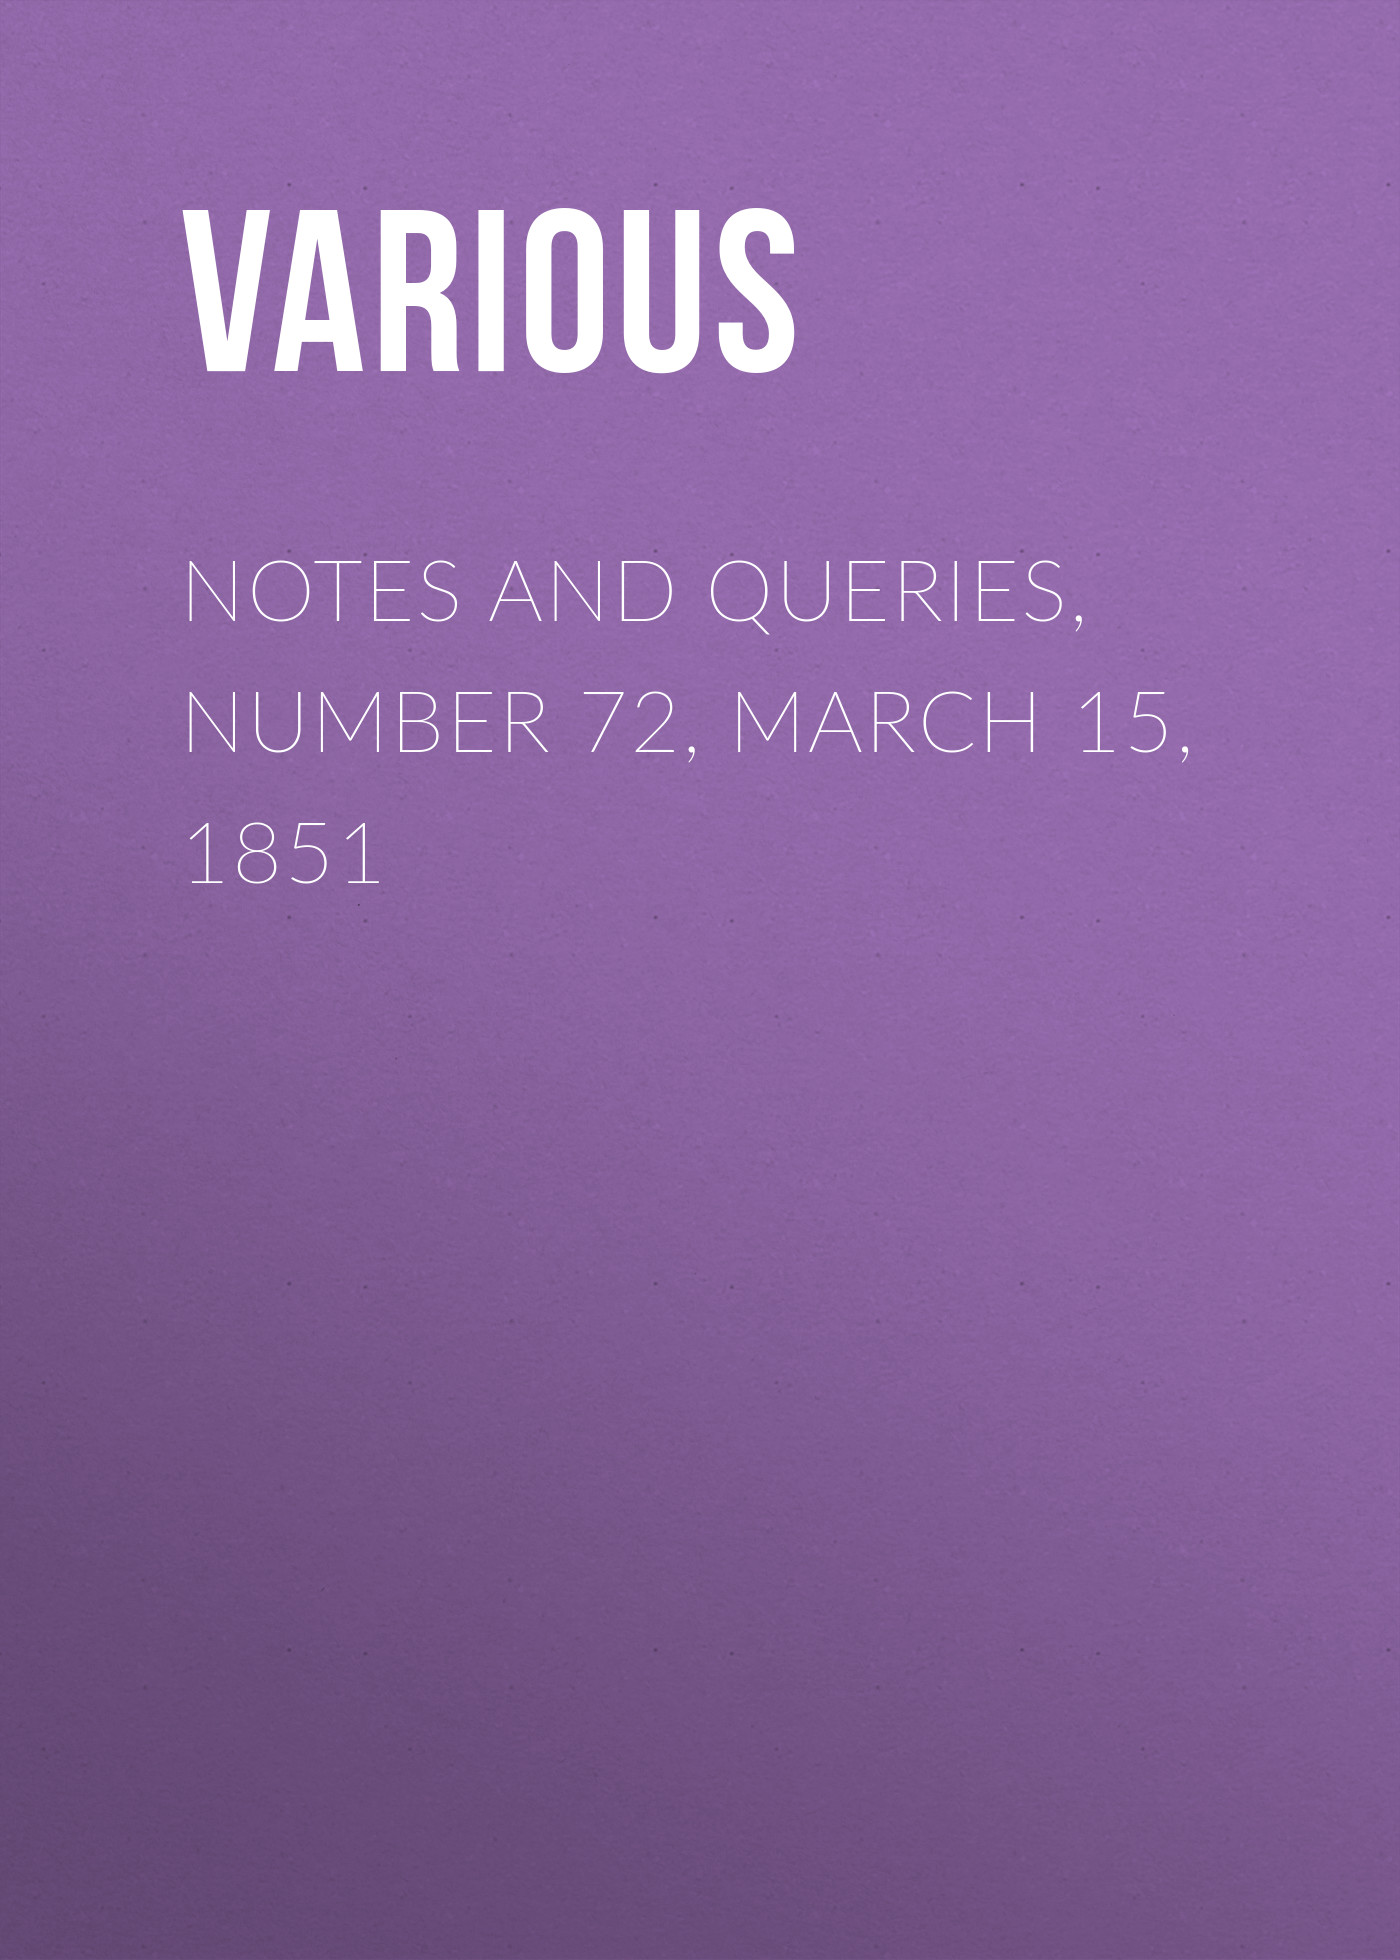 Notes and Queries, Number 72, March 15, 1851